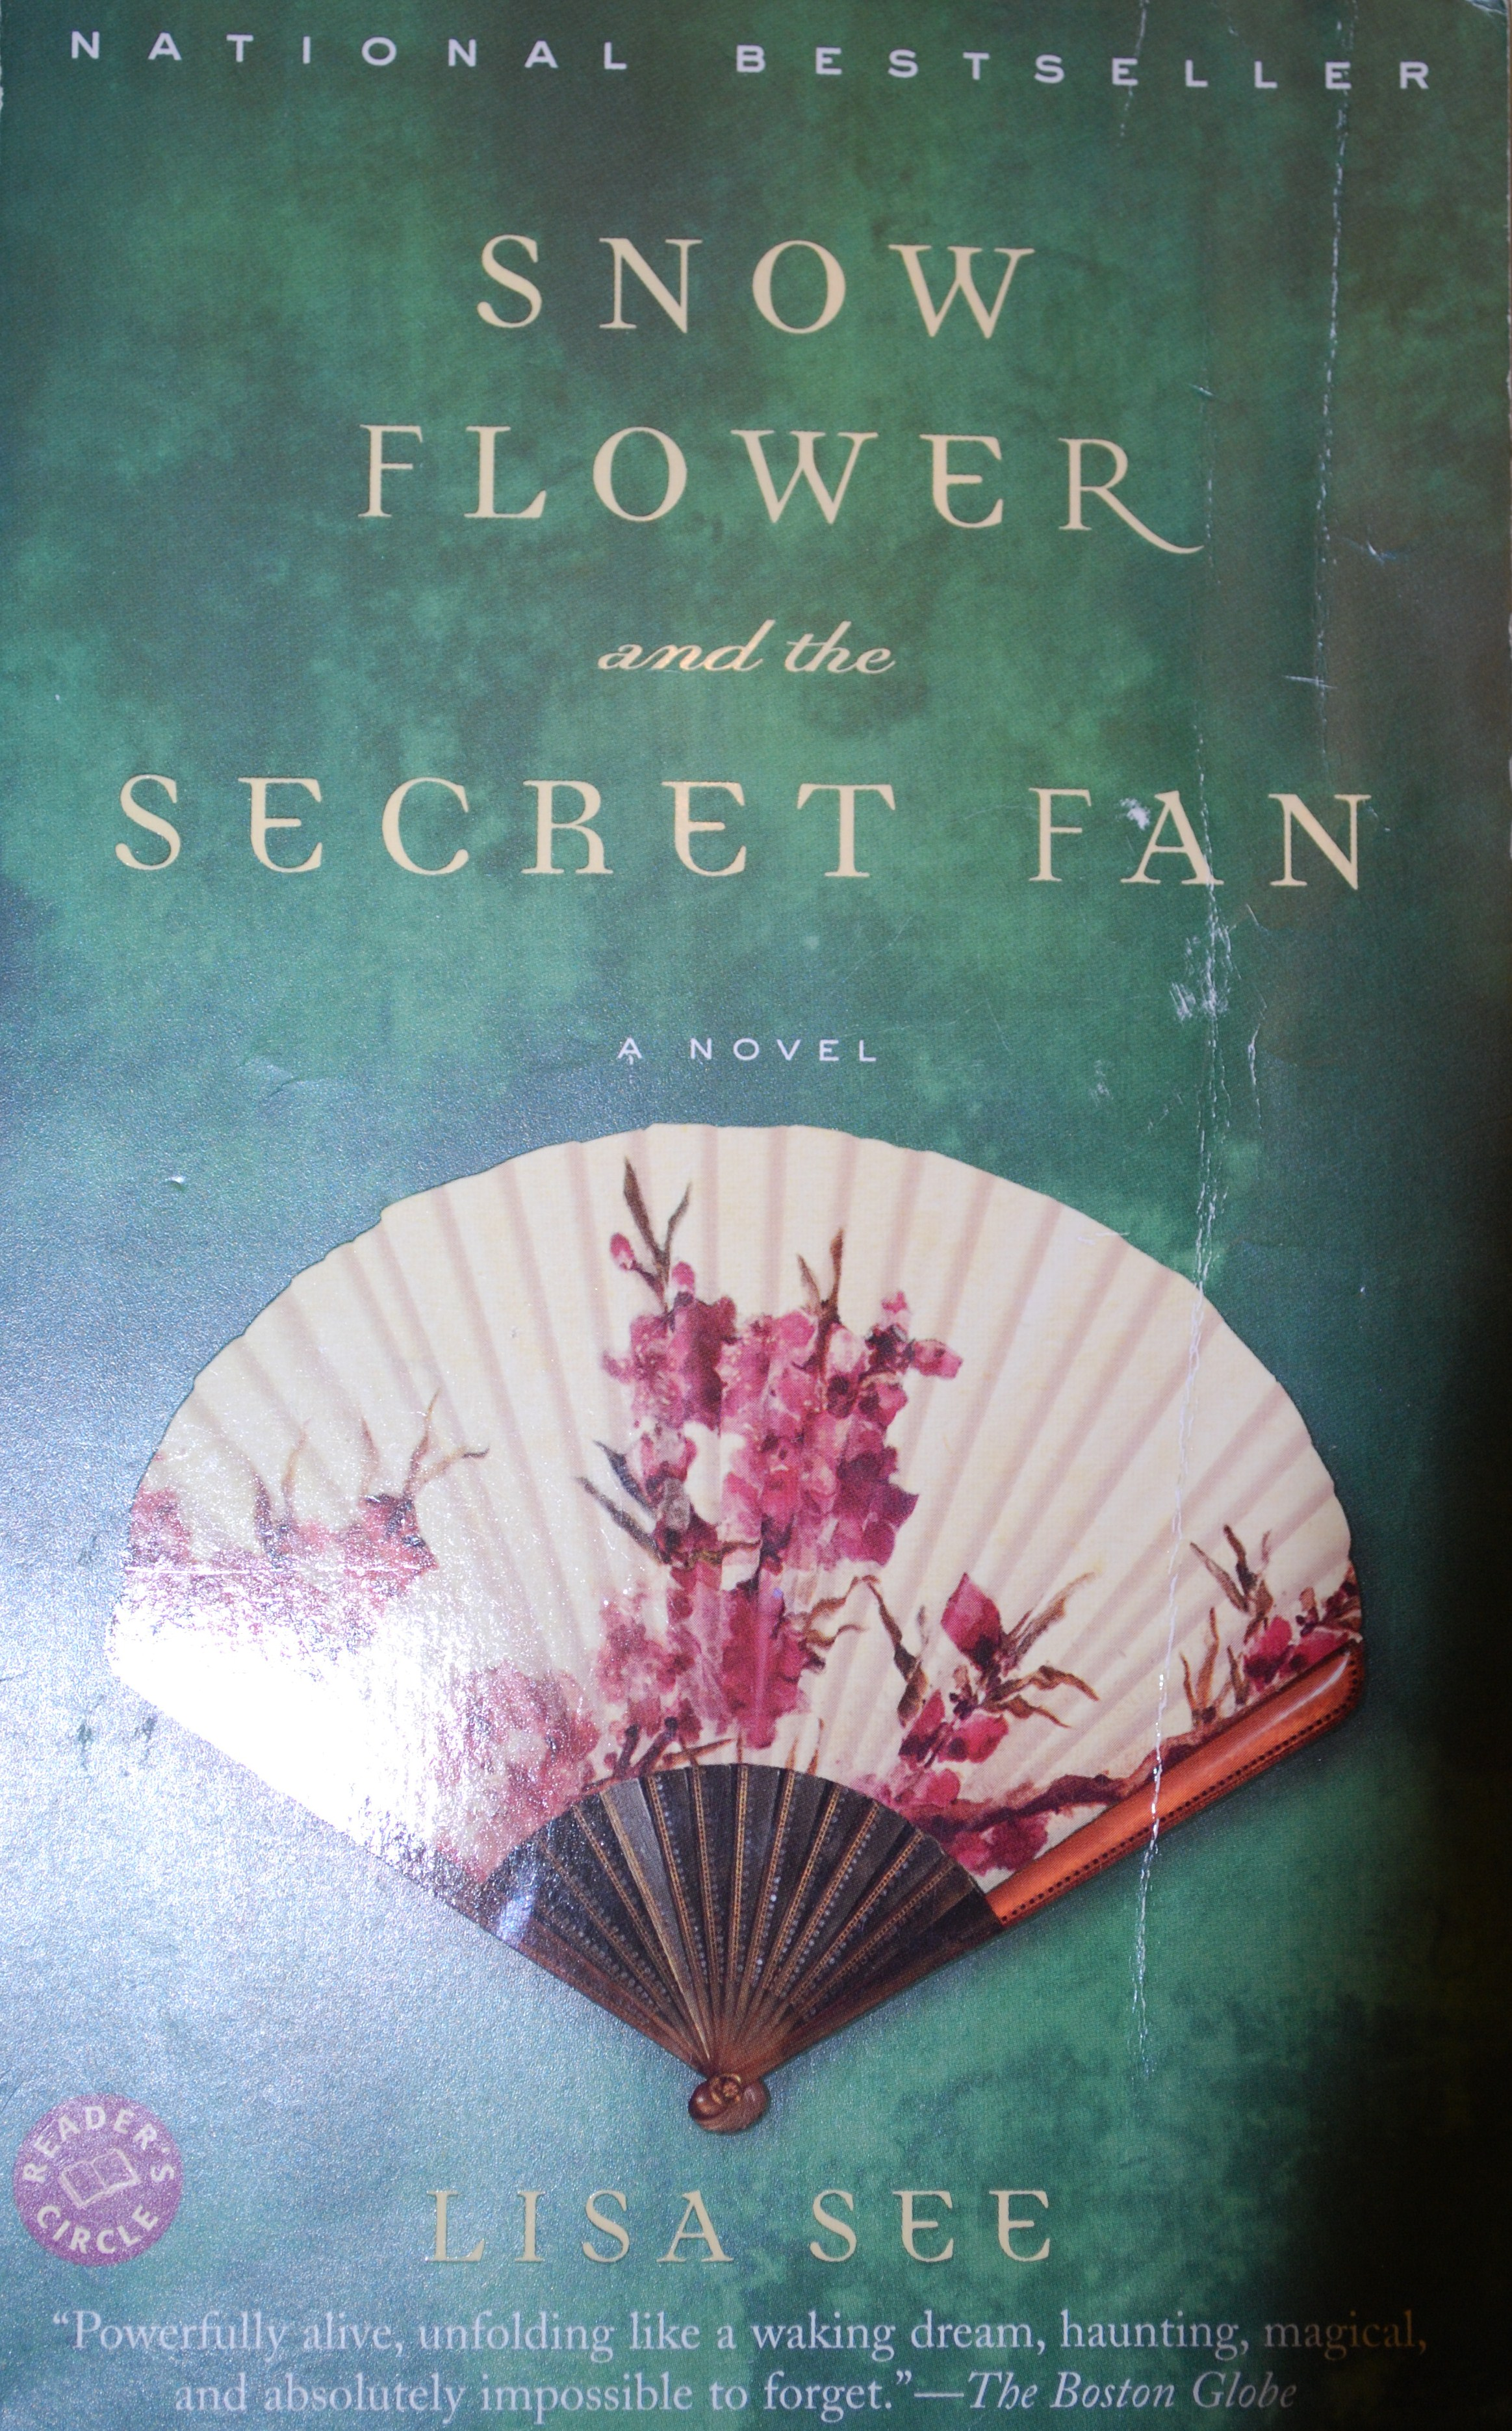 Historical fiction focused on women's roles in Qing dynasty China